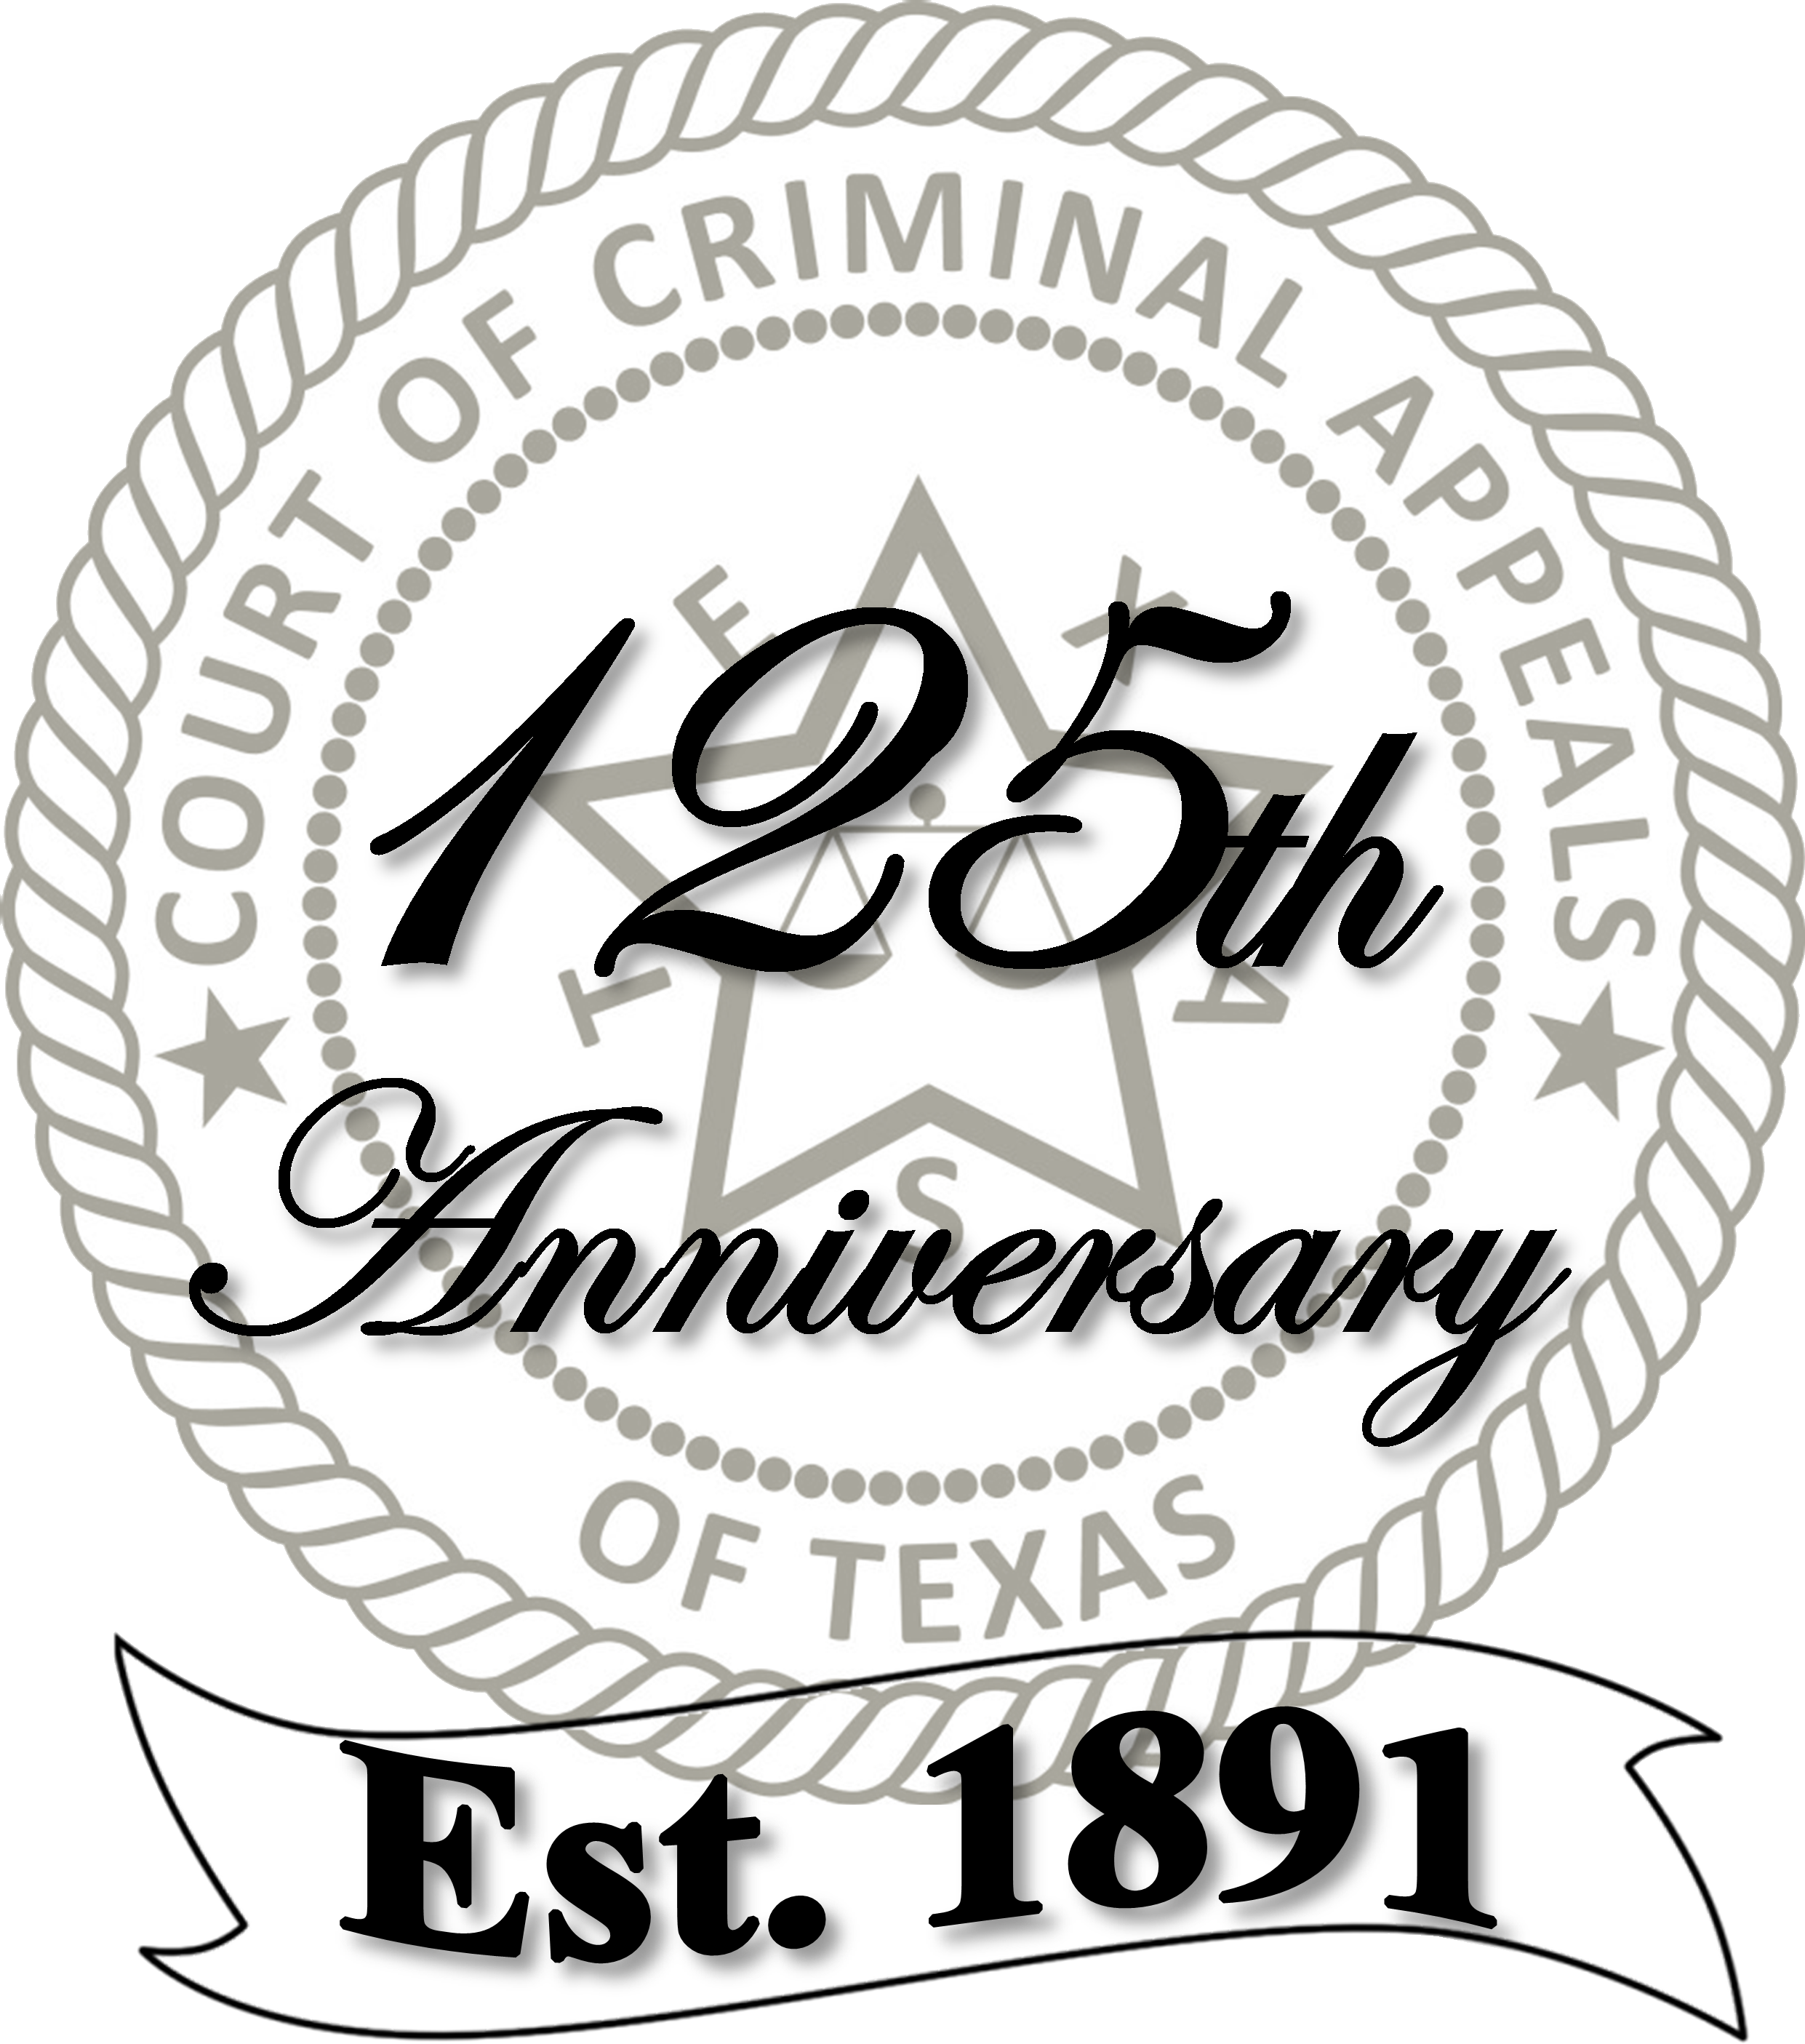 Court of Criminal Appeals special 125th Anniversary Seal